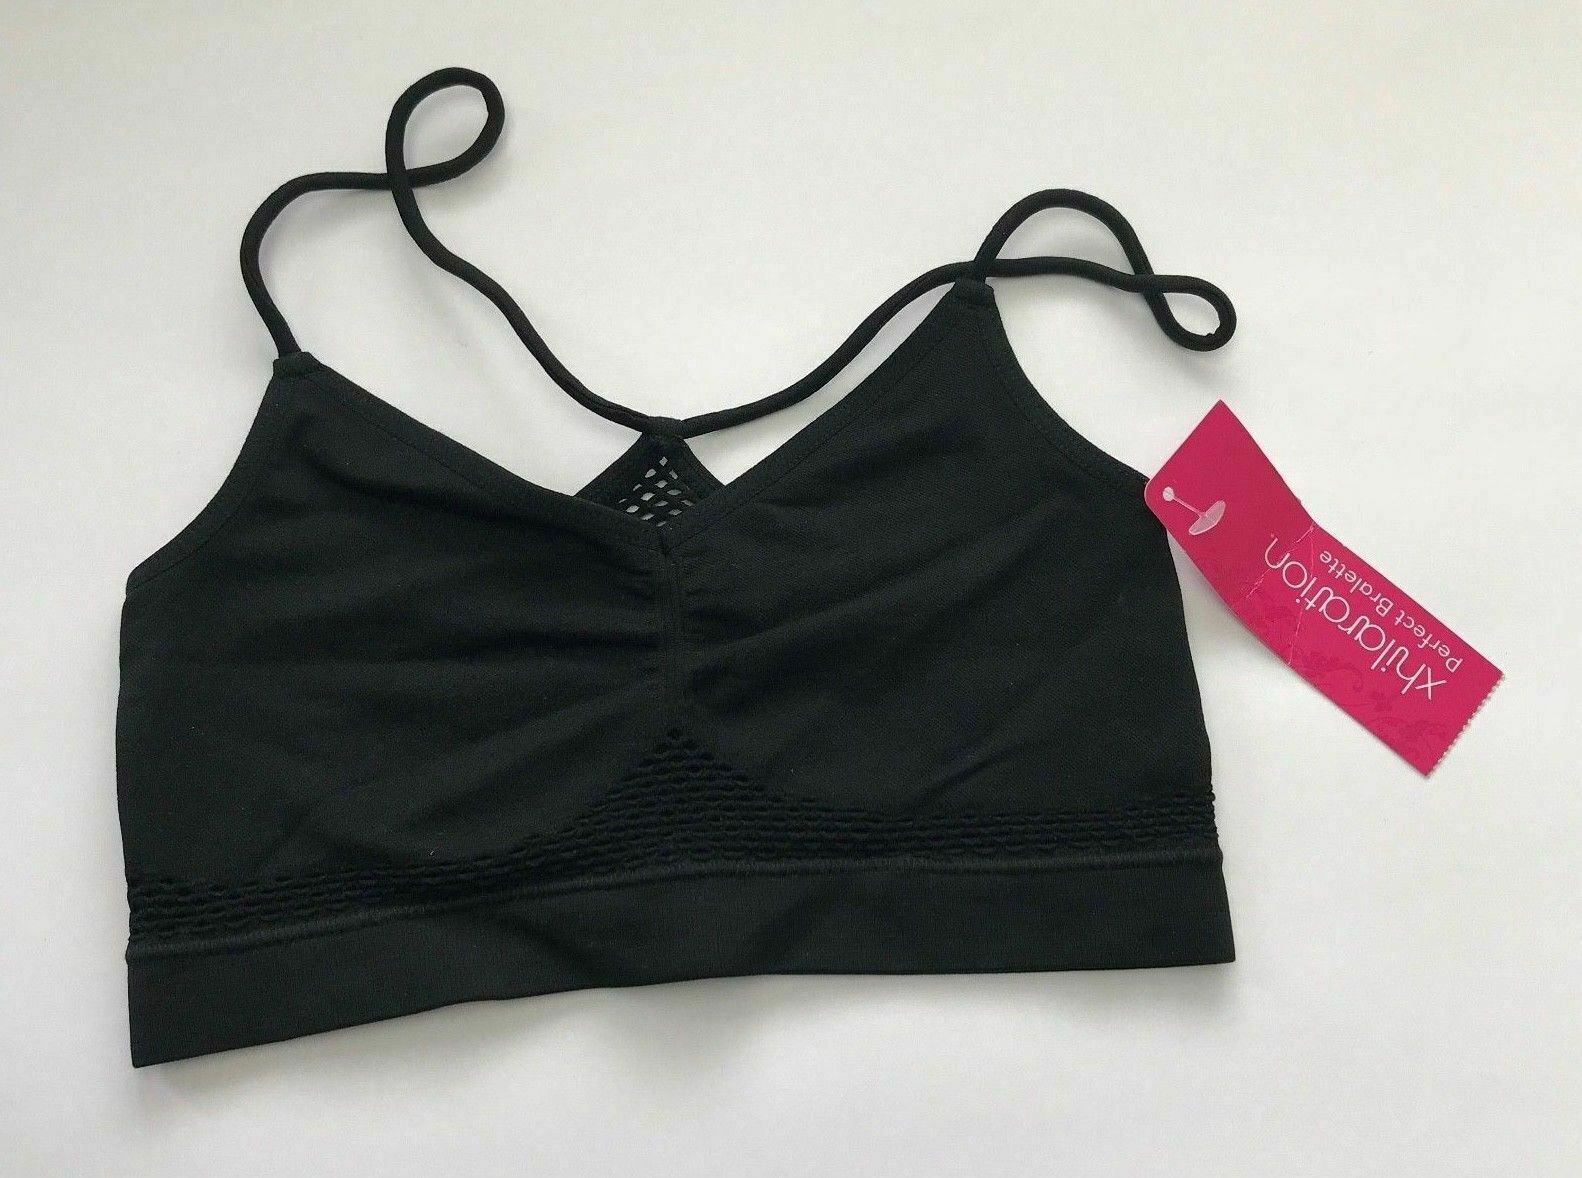 b015ad230a8 Details about Xhilaration Juniors Black Perfect Bralette Size XS NEW